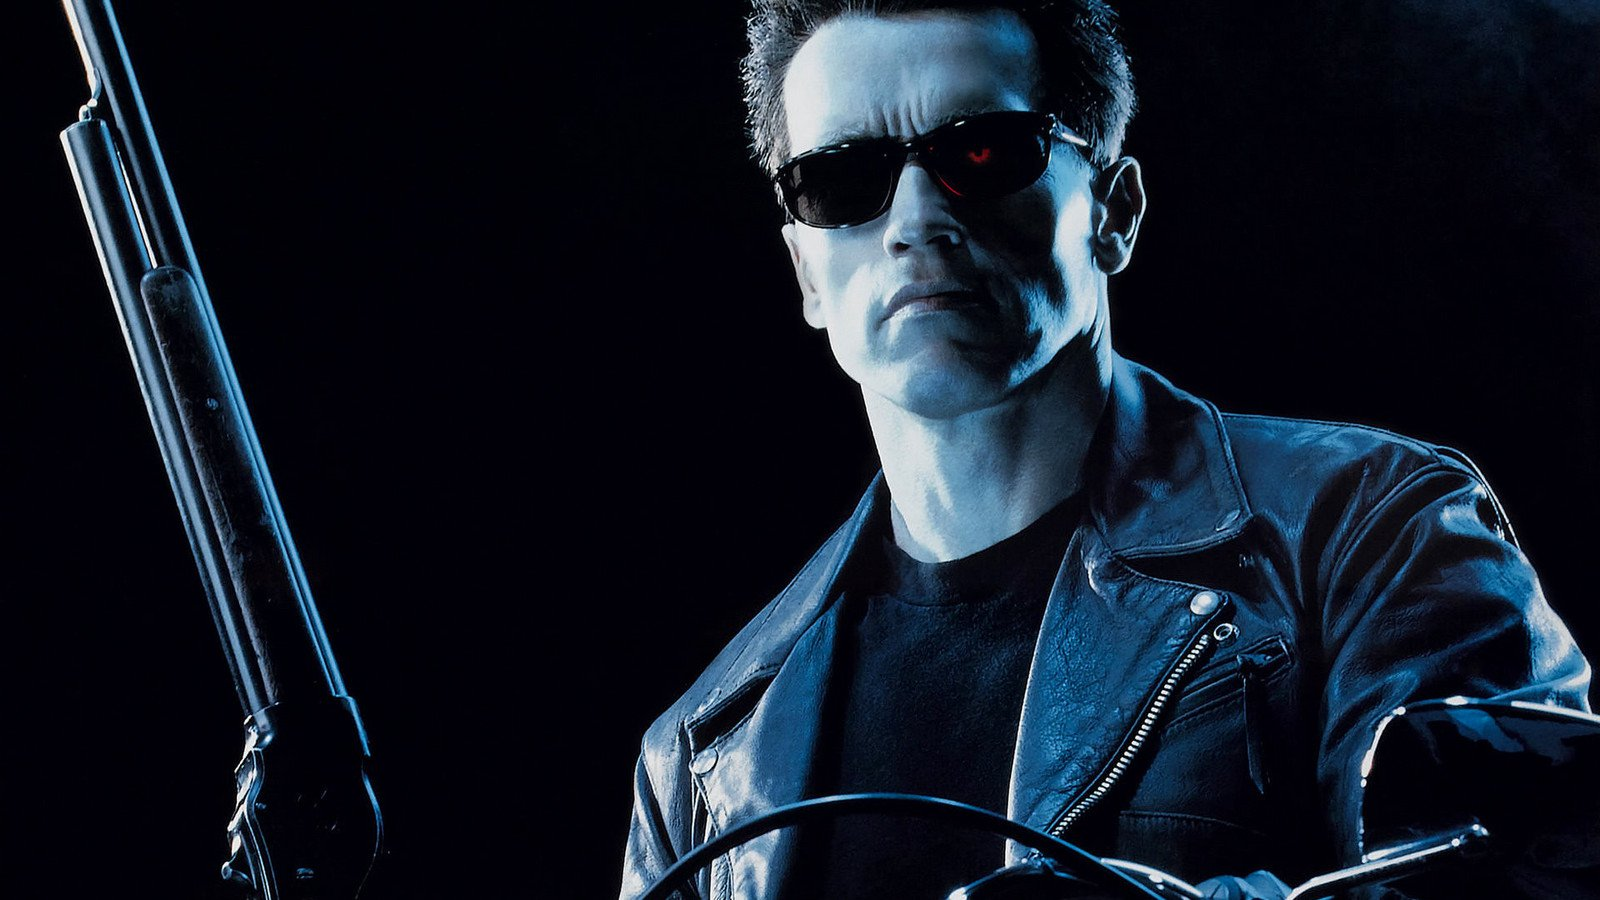 He WILL be back! Arnold Schwarzenegger confirms another Terminator; updates on Triplets and Conan - HeyUGuys